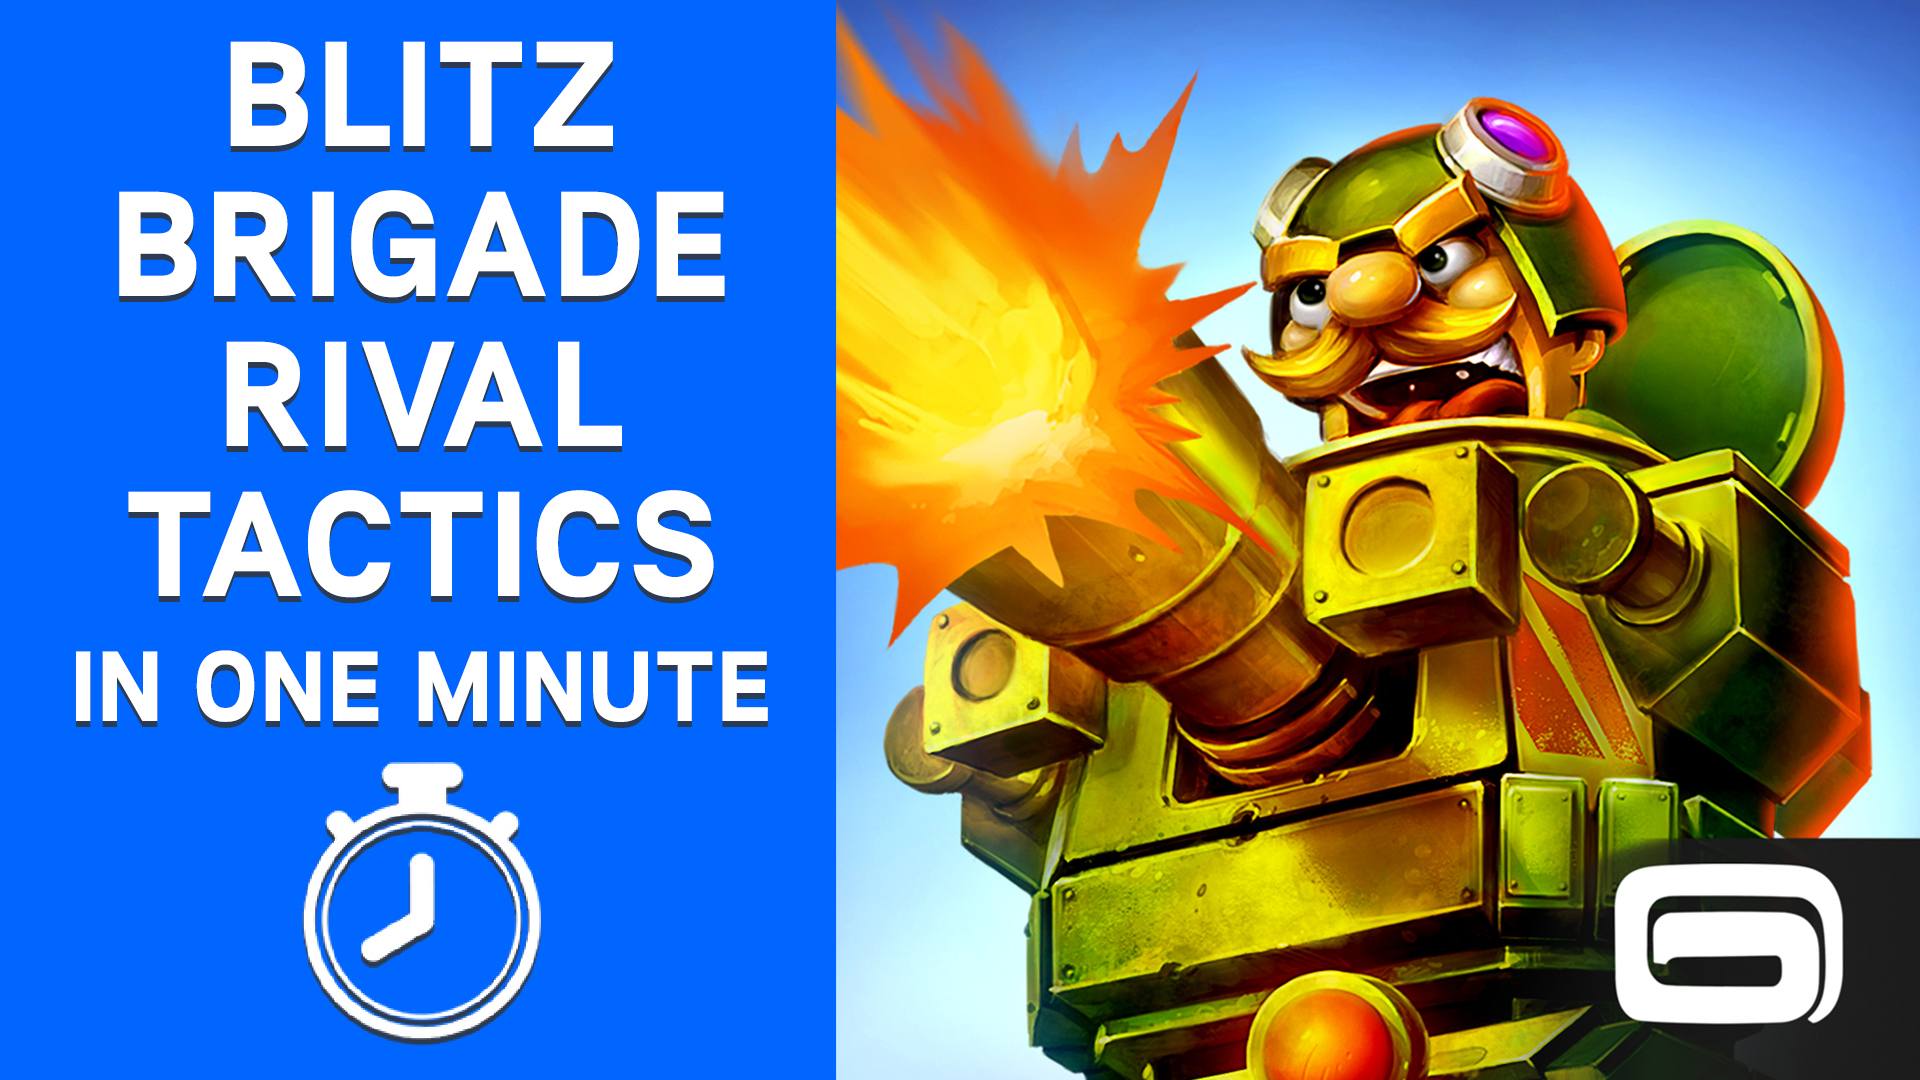 Blitz Brigade Rival Tactics in One Minute